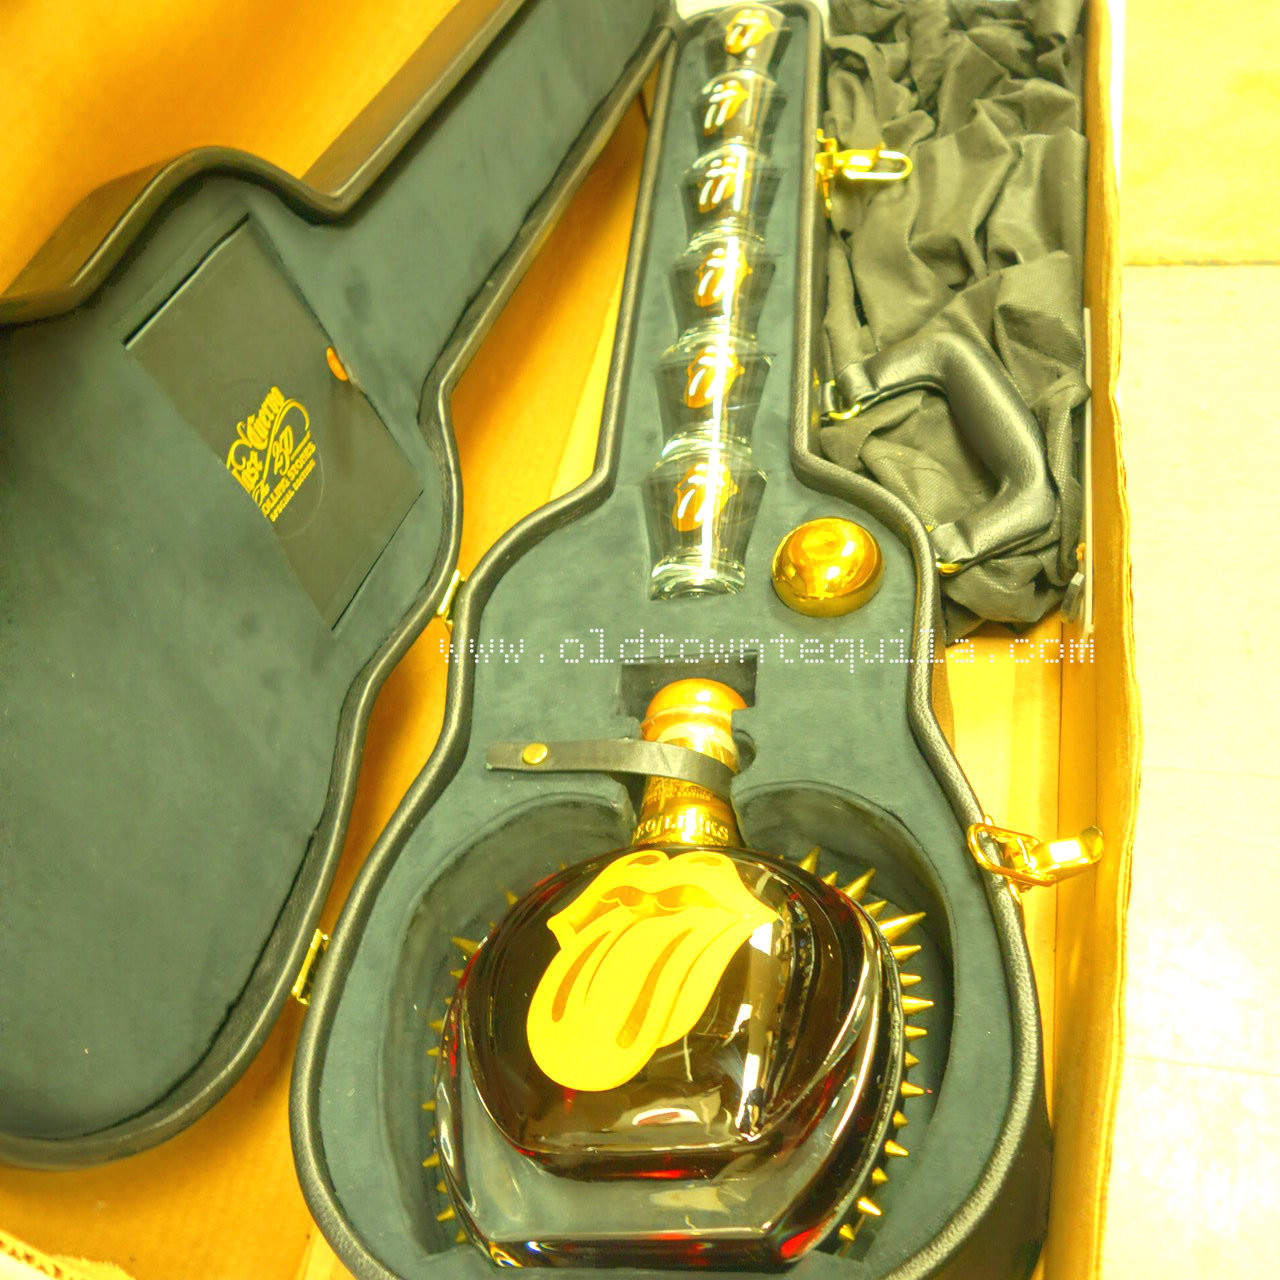 Jose Cuervo 250th Anniversary Rolling Stones Edition Www